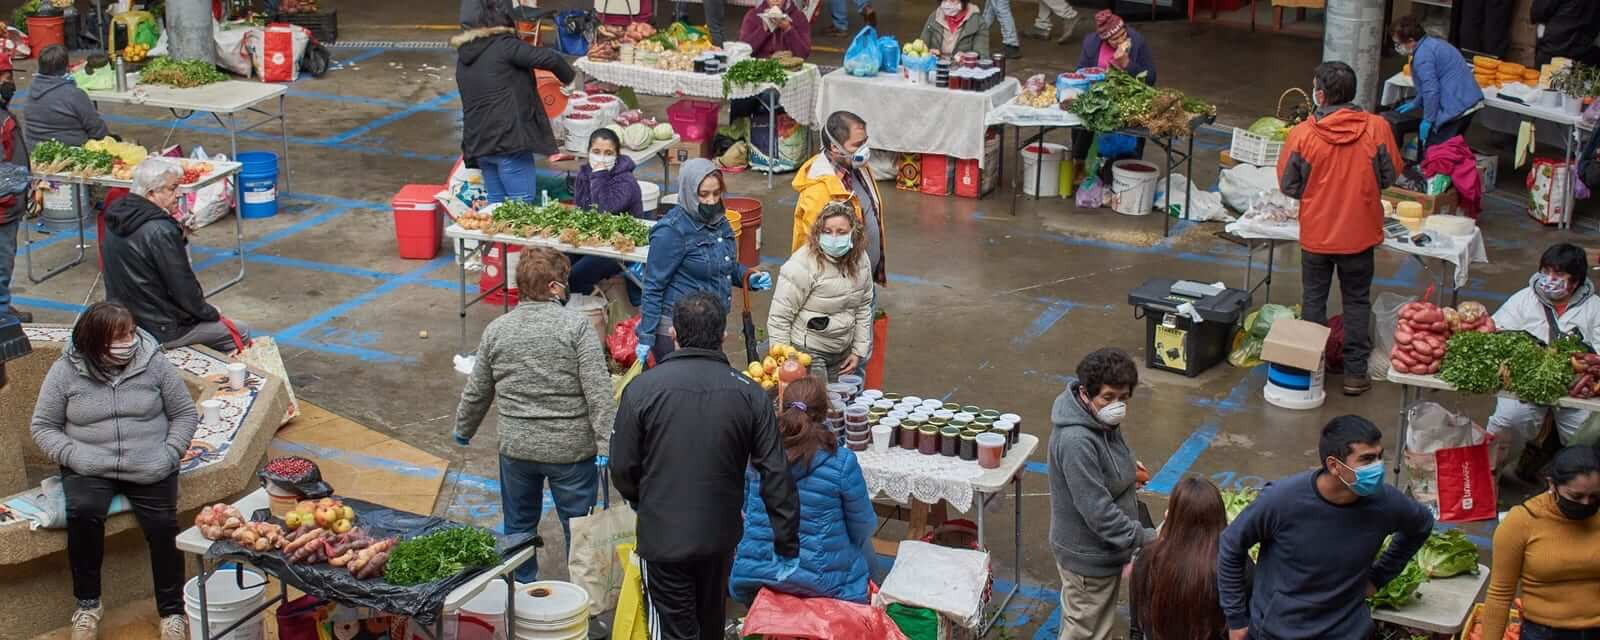 chile-market-during-pandemic